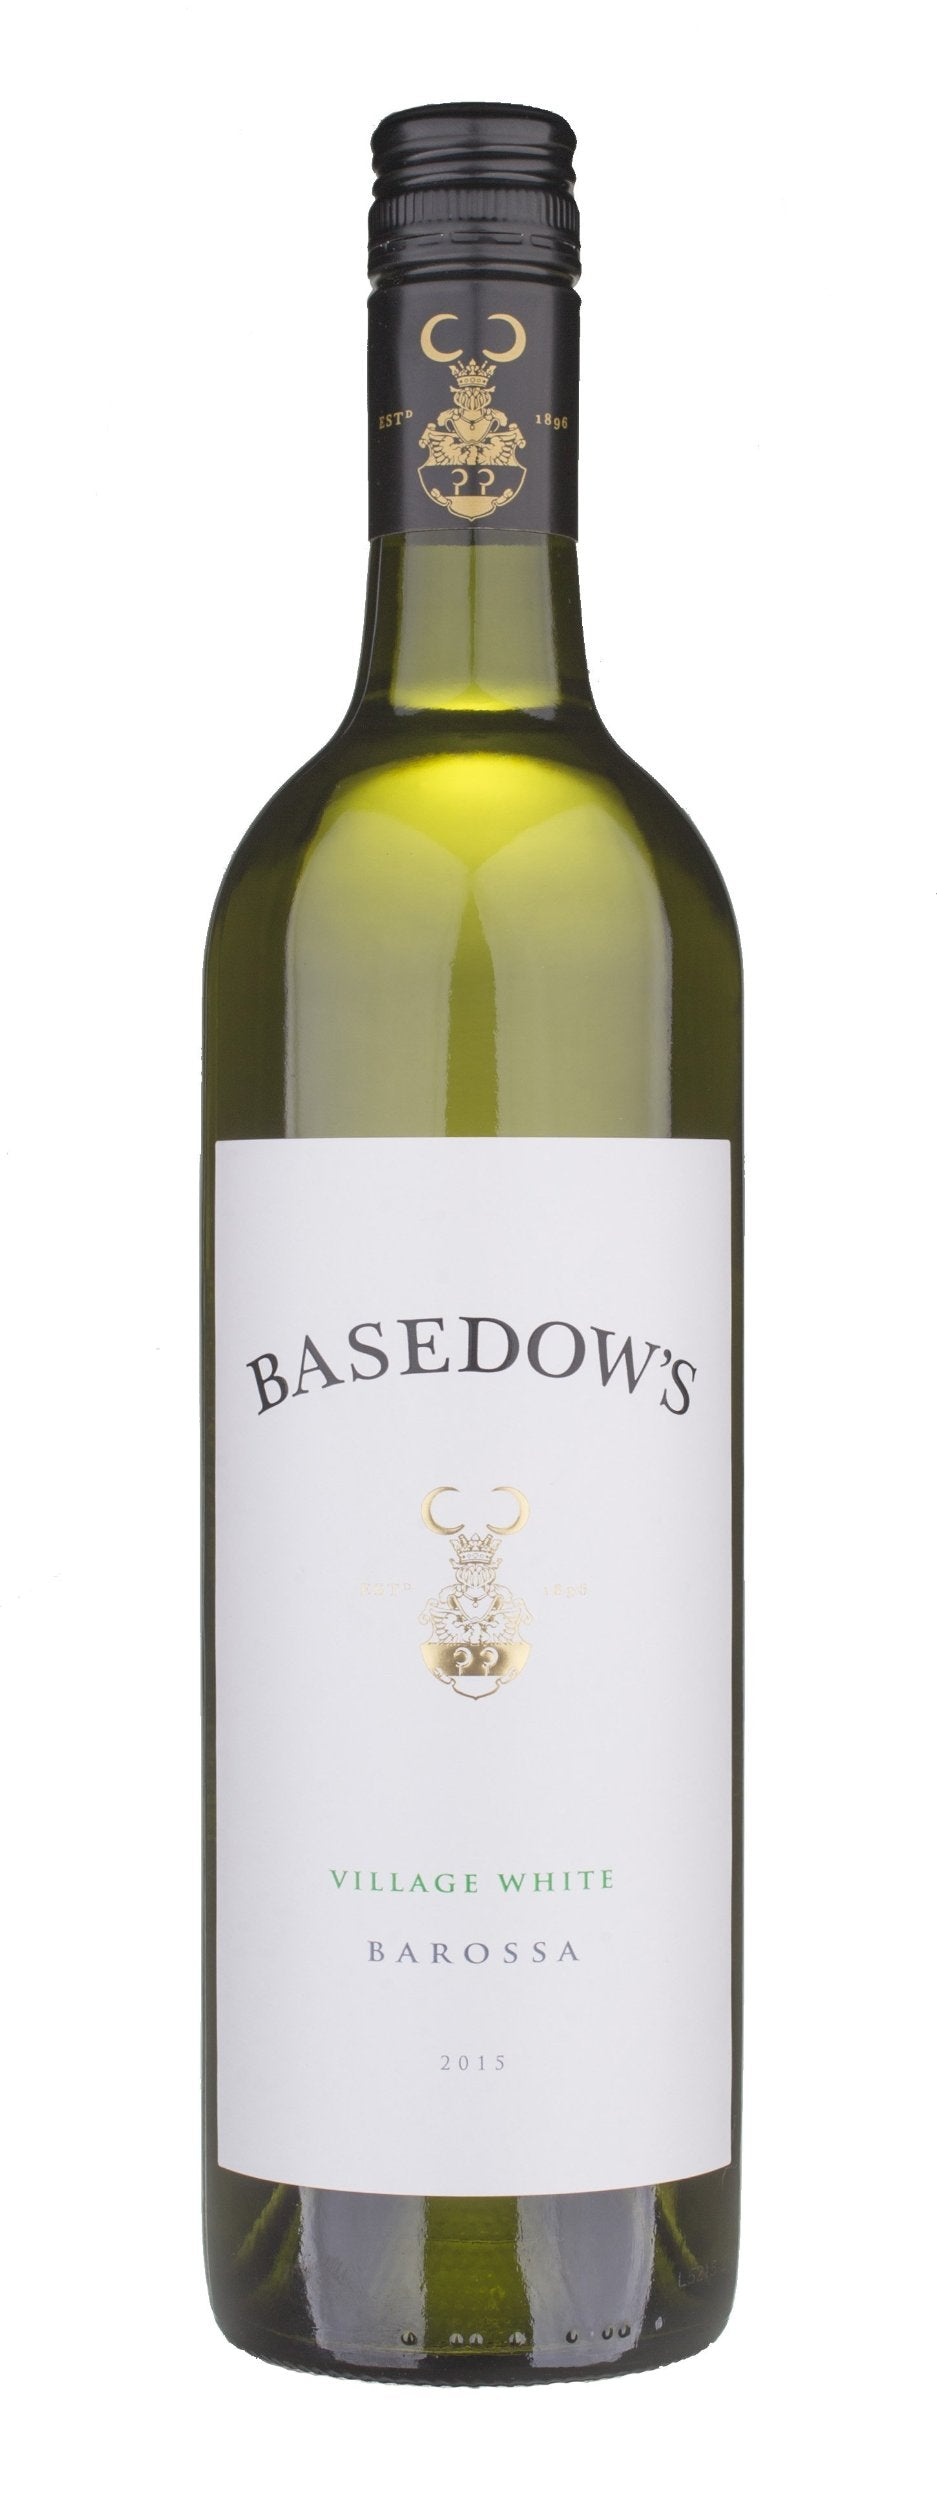 Basedow's Barossa Village White 2015